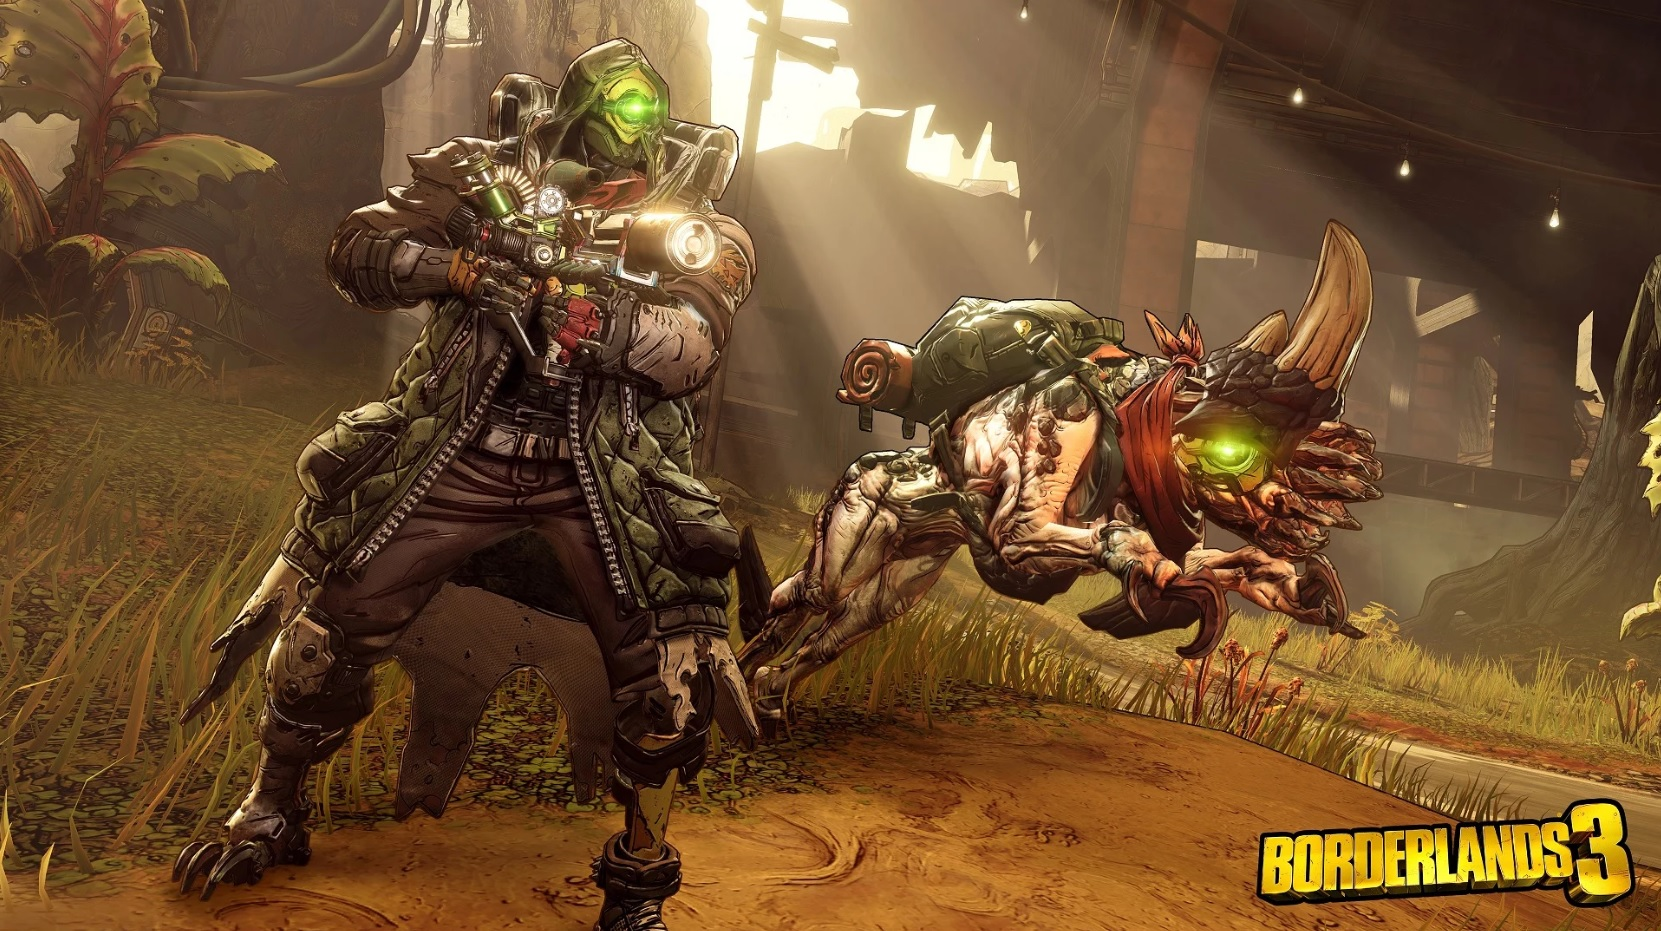 Borderlands 3 might include alternate box art of a Psycho with three finger guns - Destructoid